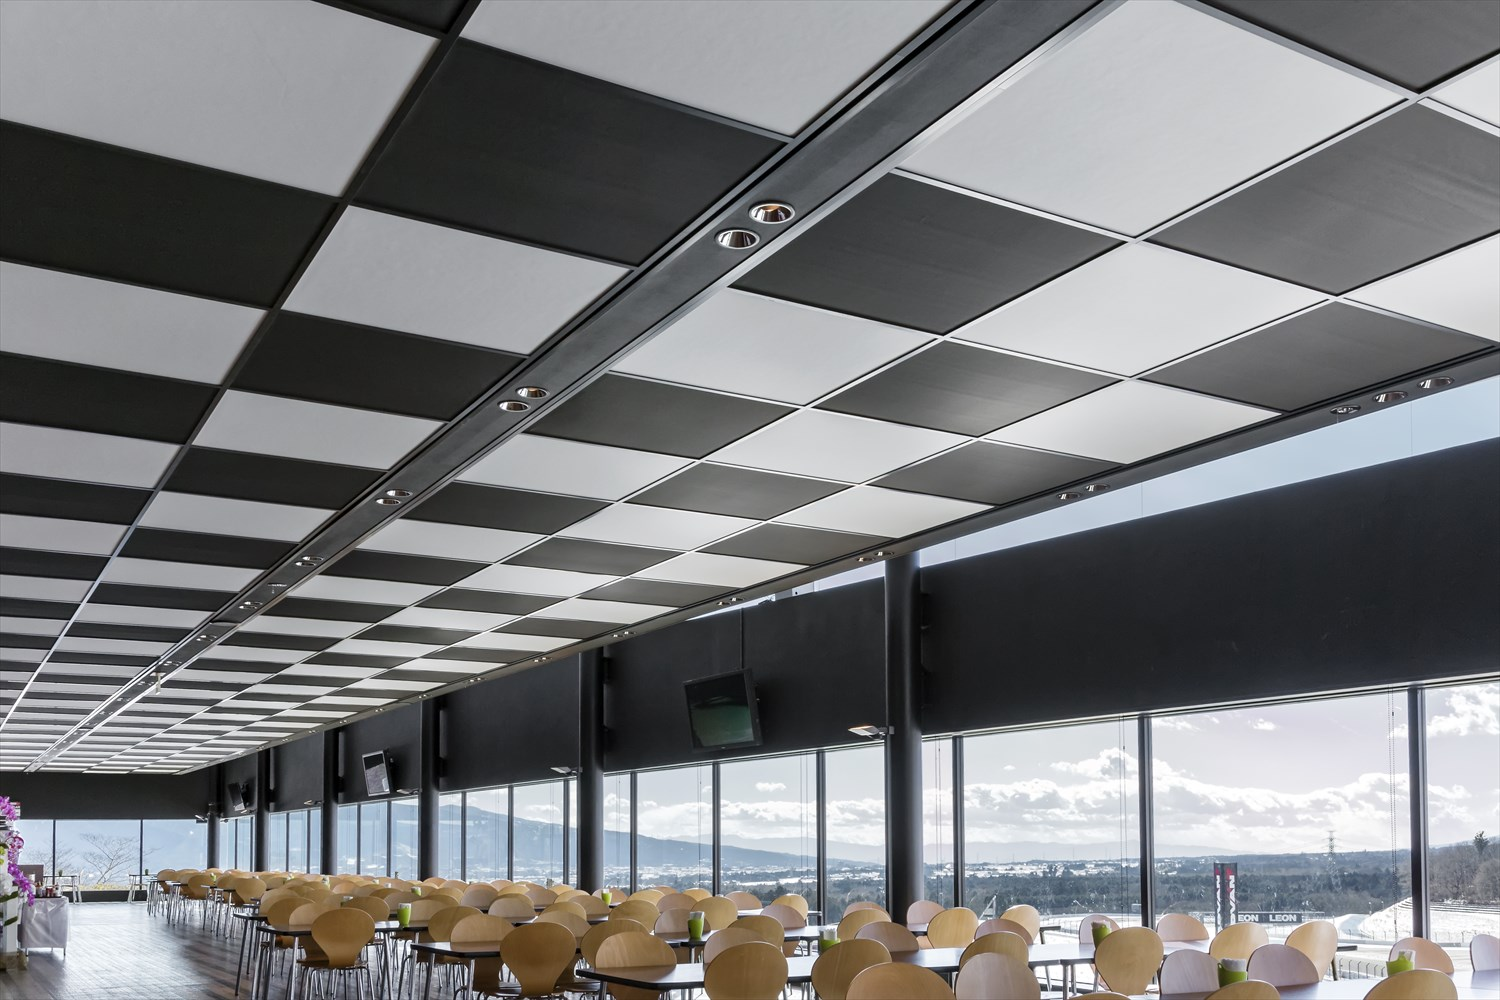 For earthquakes: Ultralight ceiling material